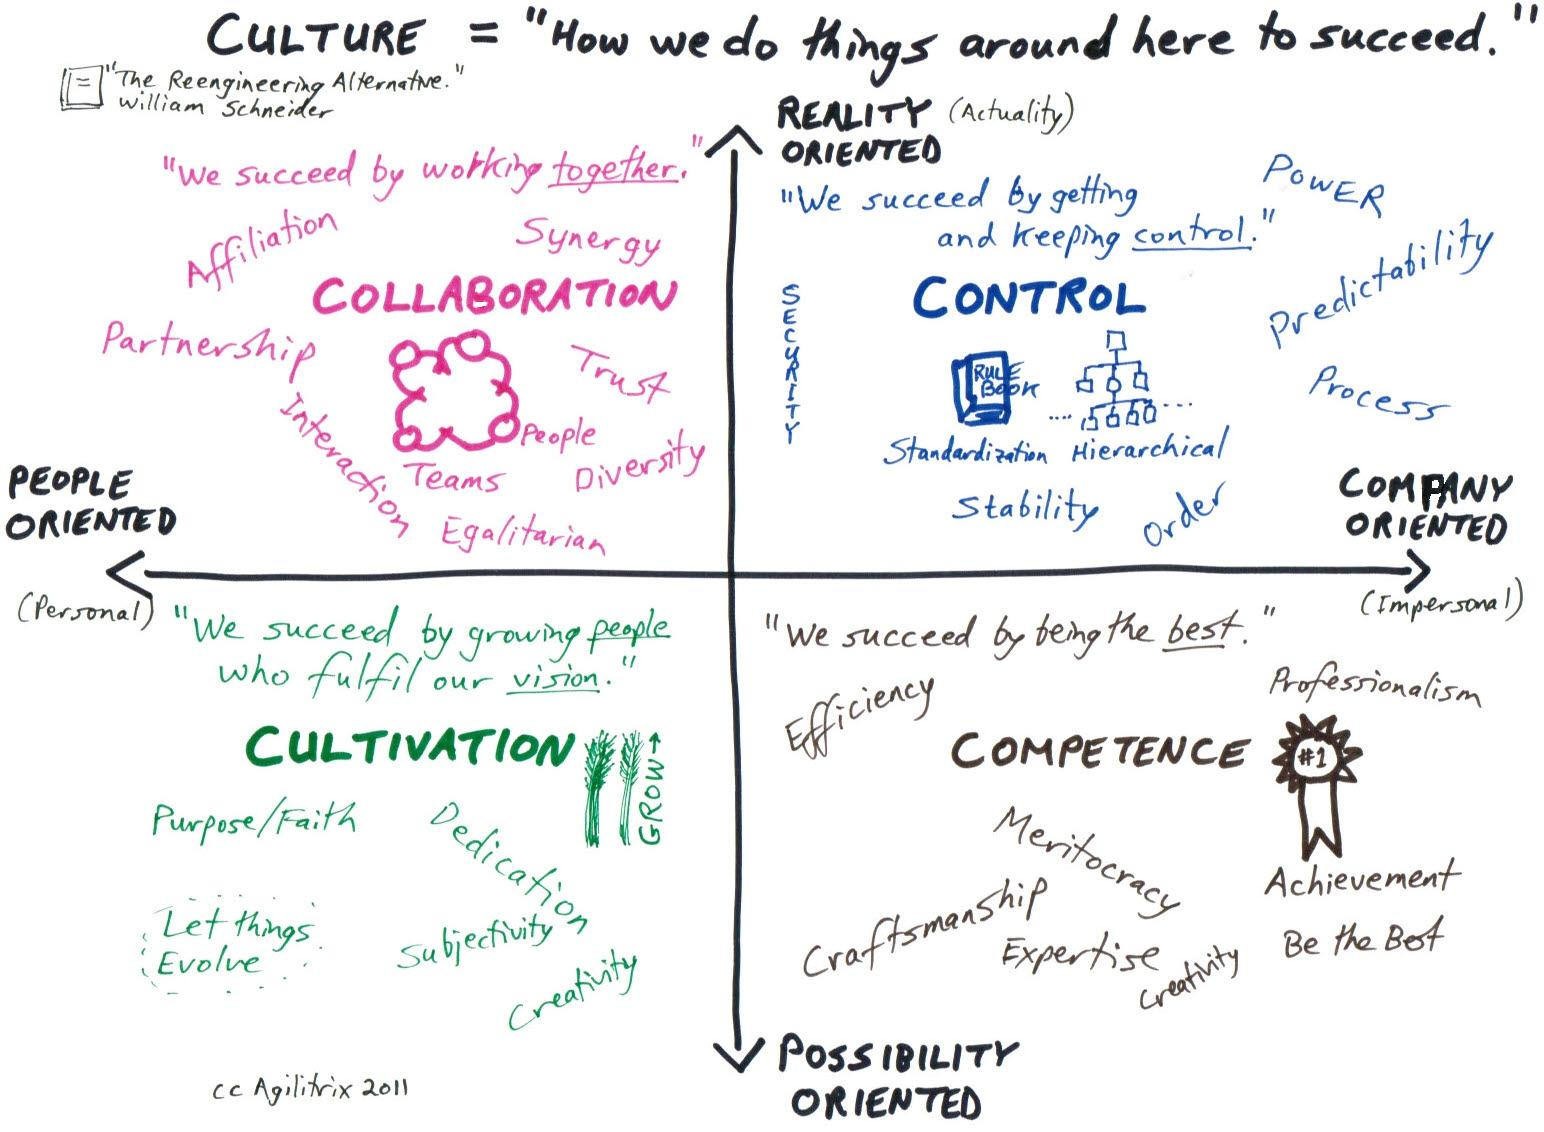 The Schneider Culture Model